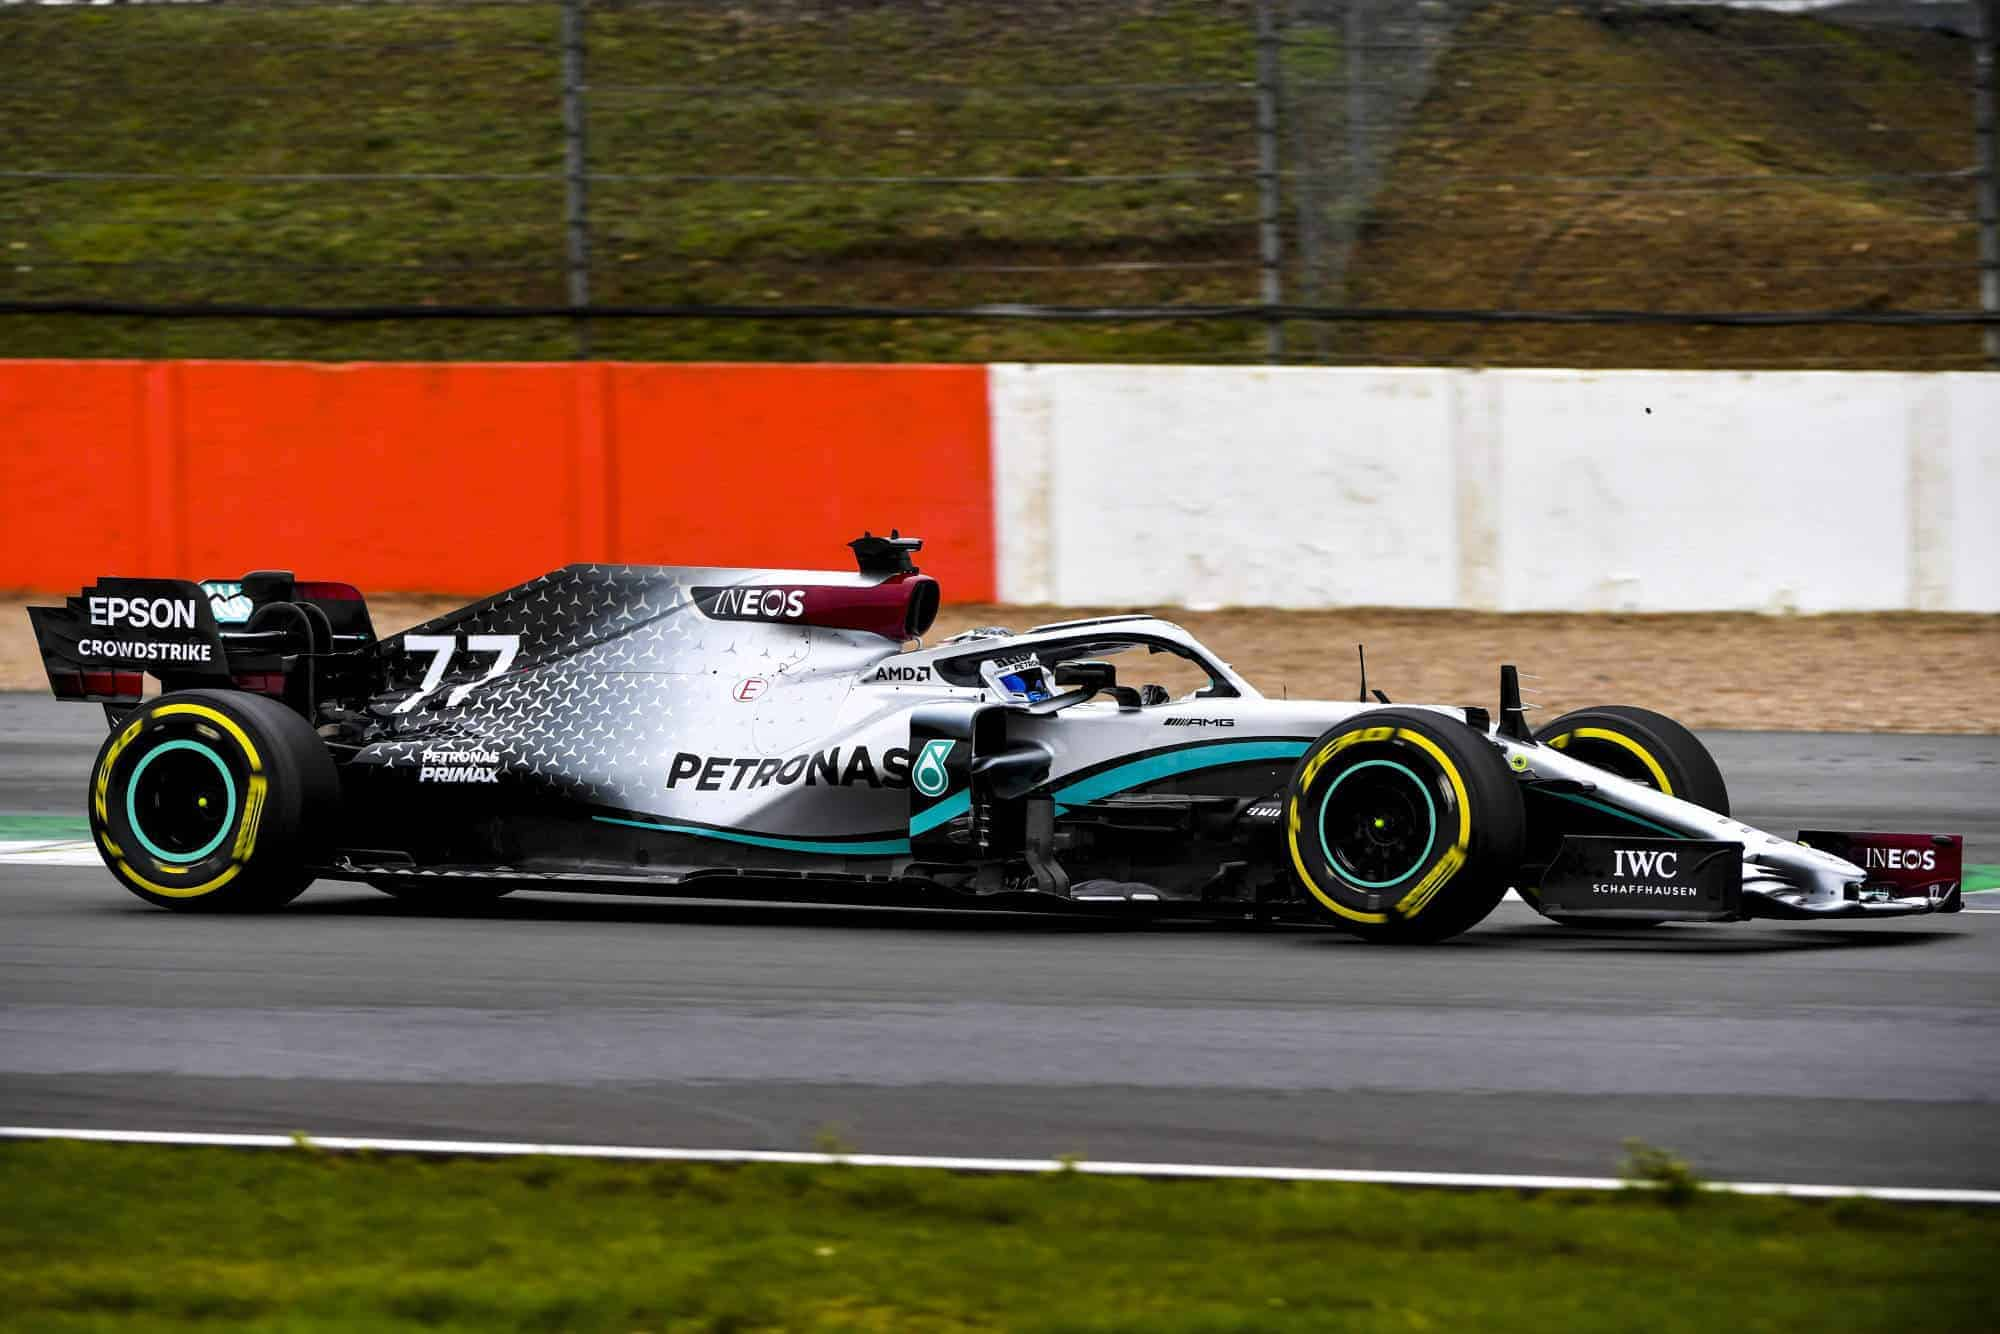 2020 F1 Mercedes F1 W11 first shakedown Silverstone Bottas side 2000px Photo Daimler